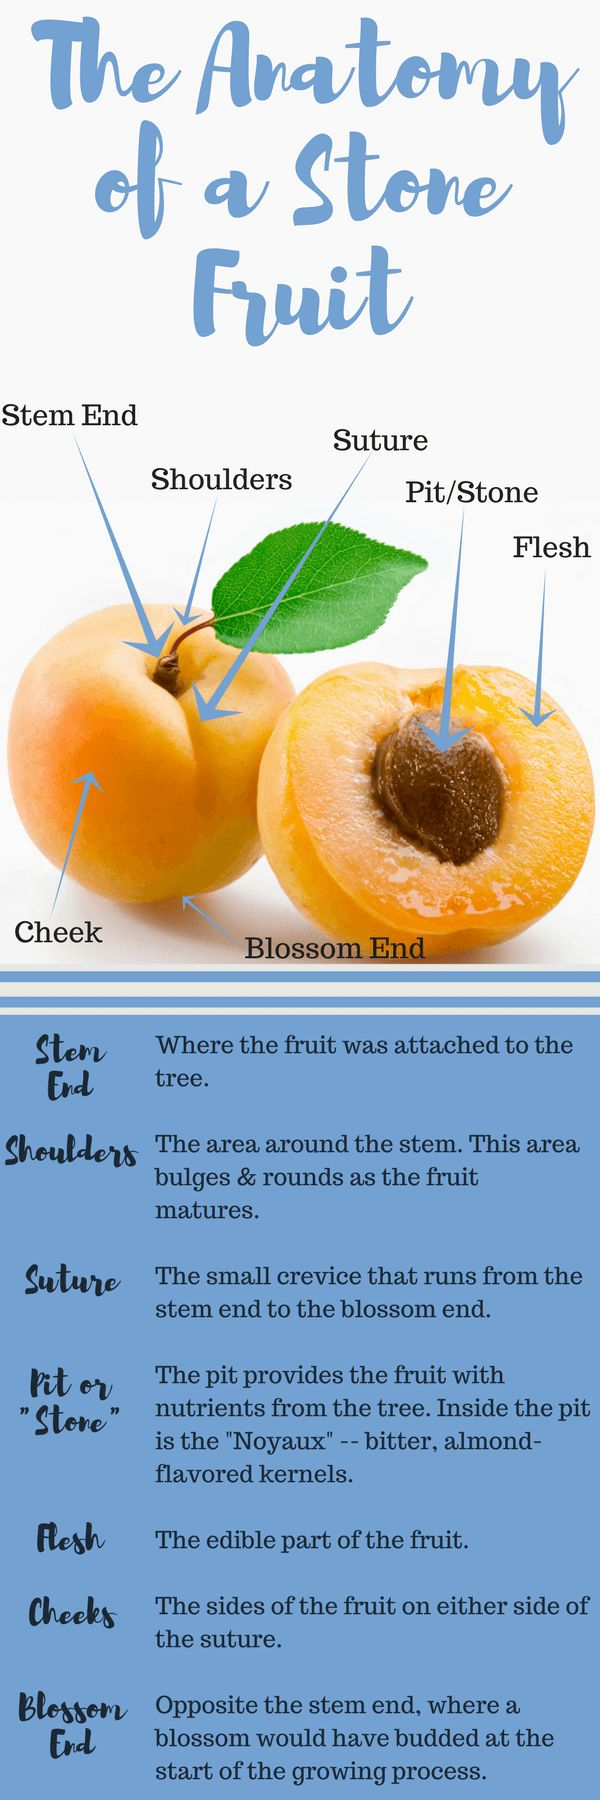 The Anatomy of a Stone Fruit